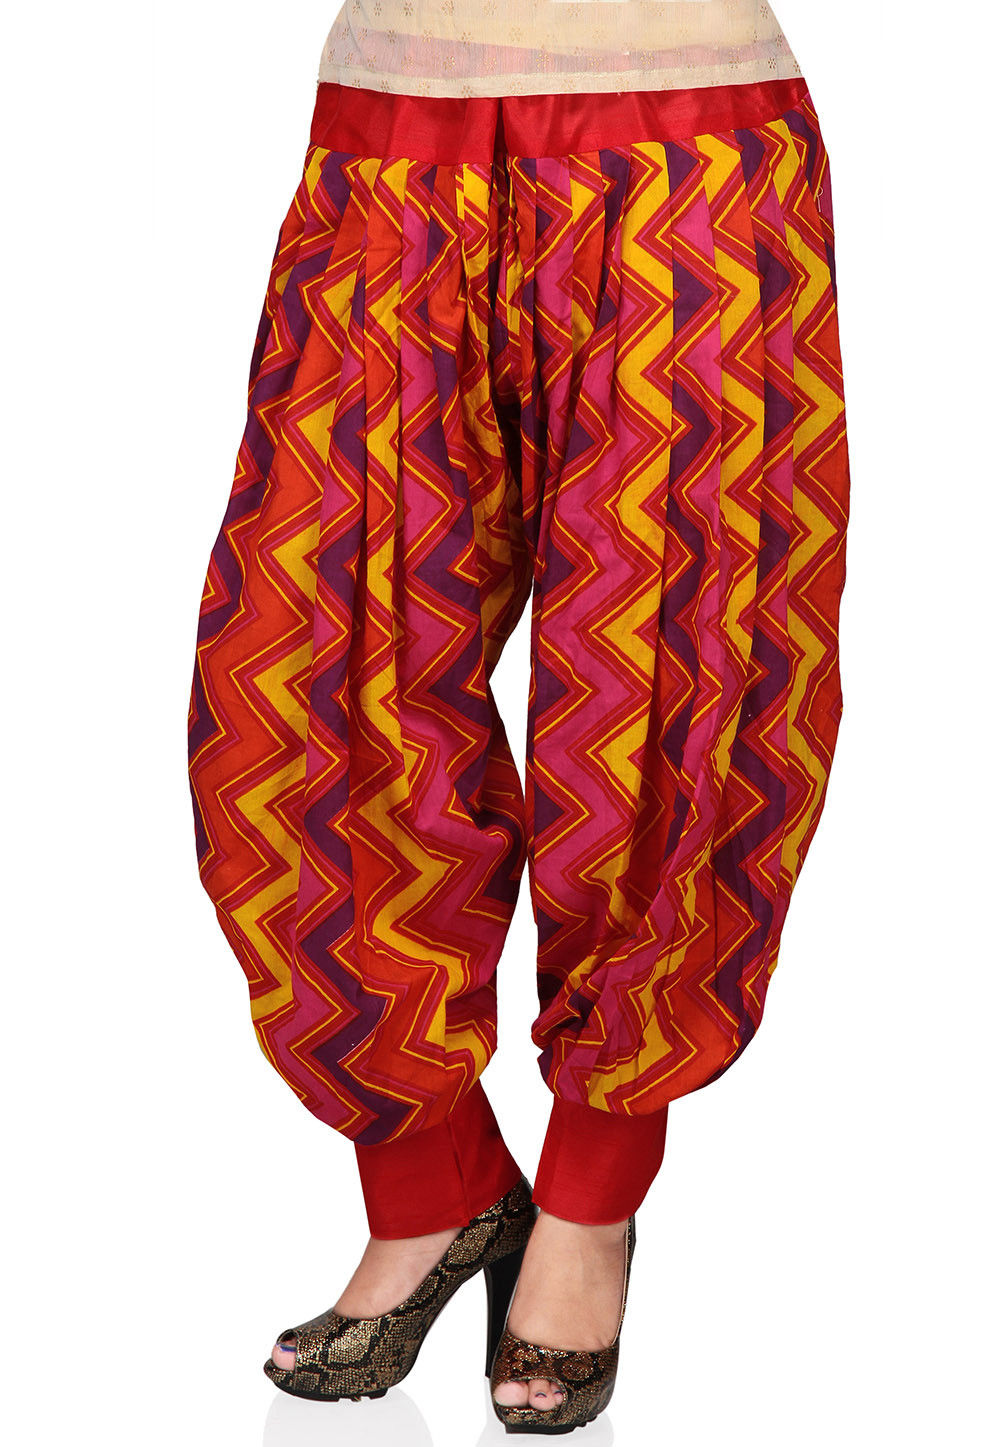 Printed Cotton Readymade Jasmine Pant in Multicolour